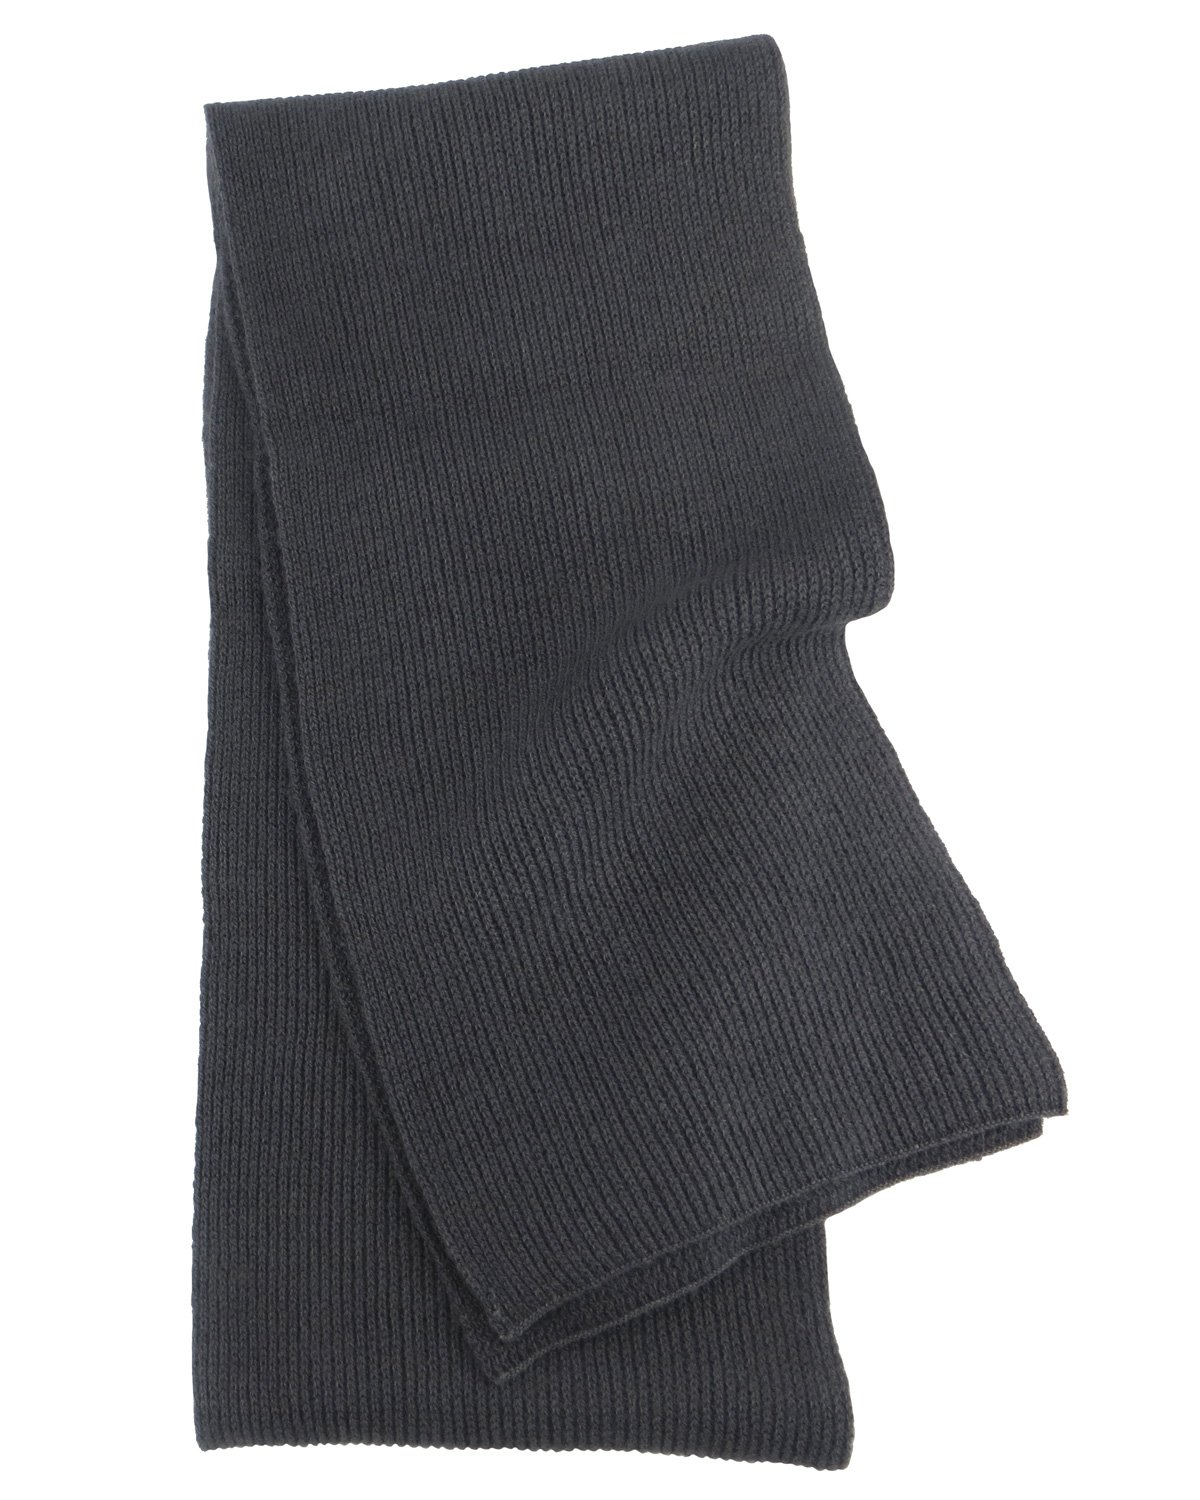 Pure Cashmere Scarf in Charcoal for Man